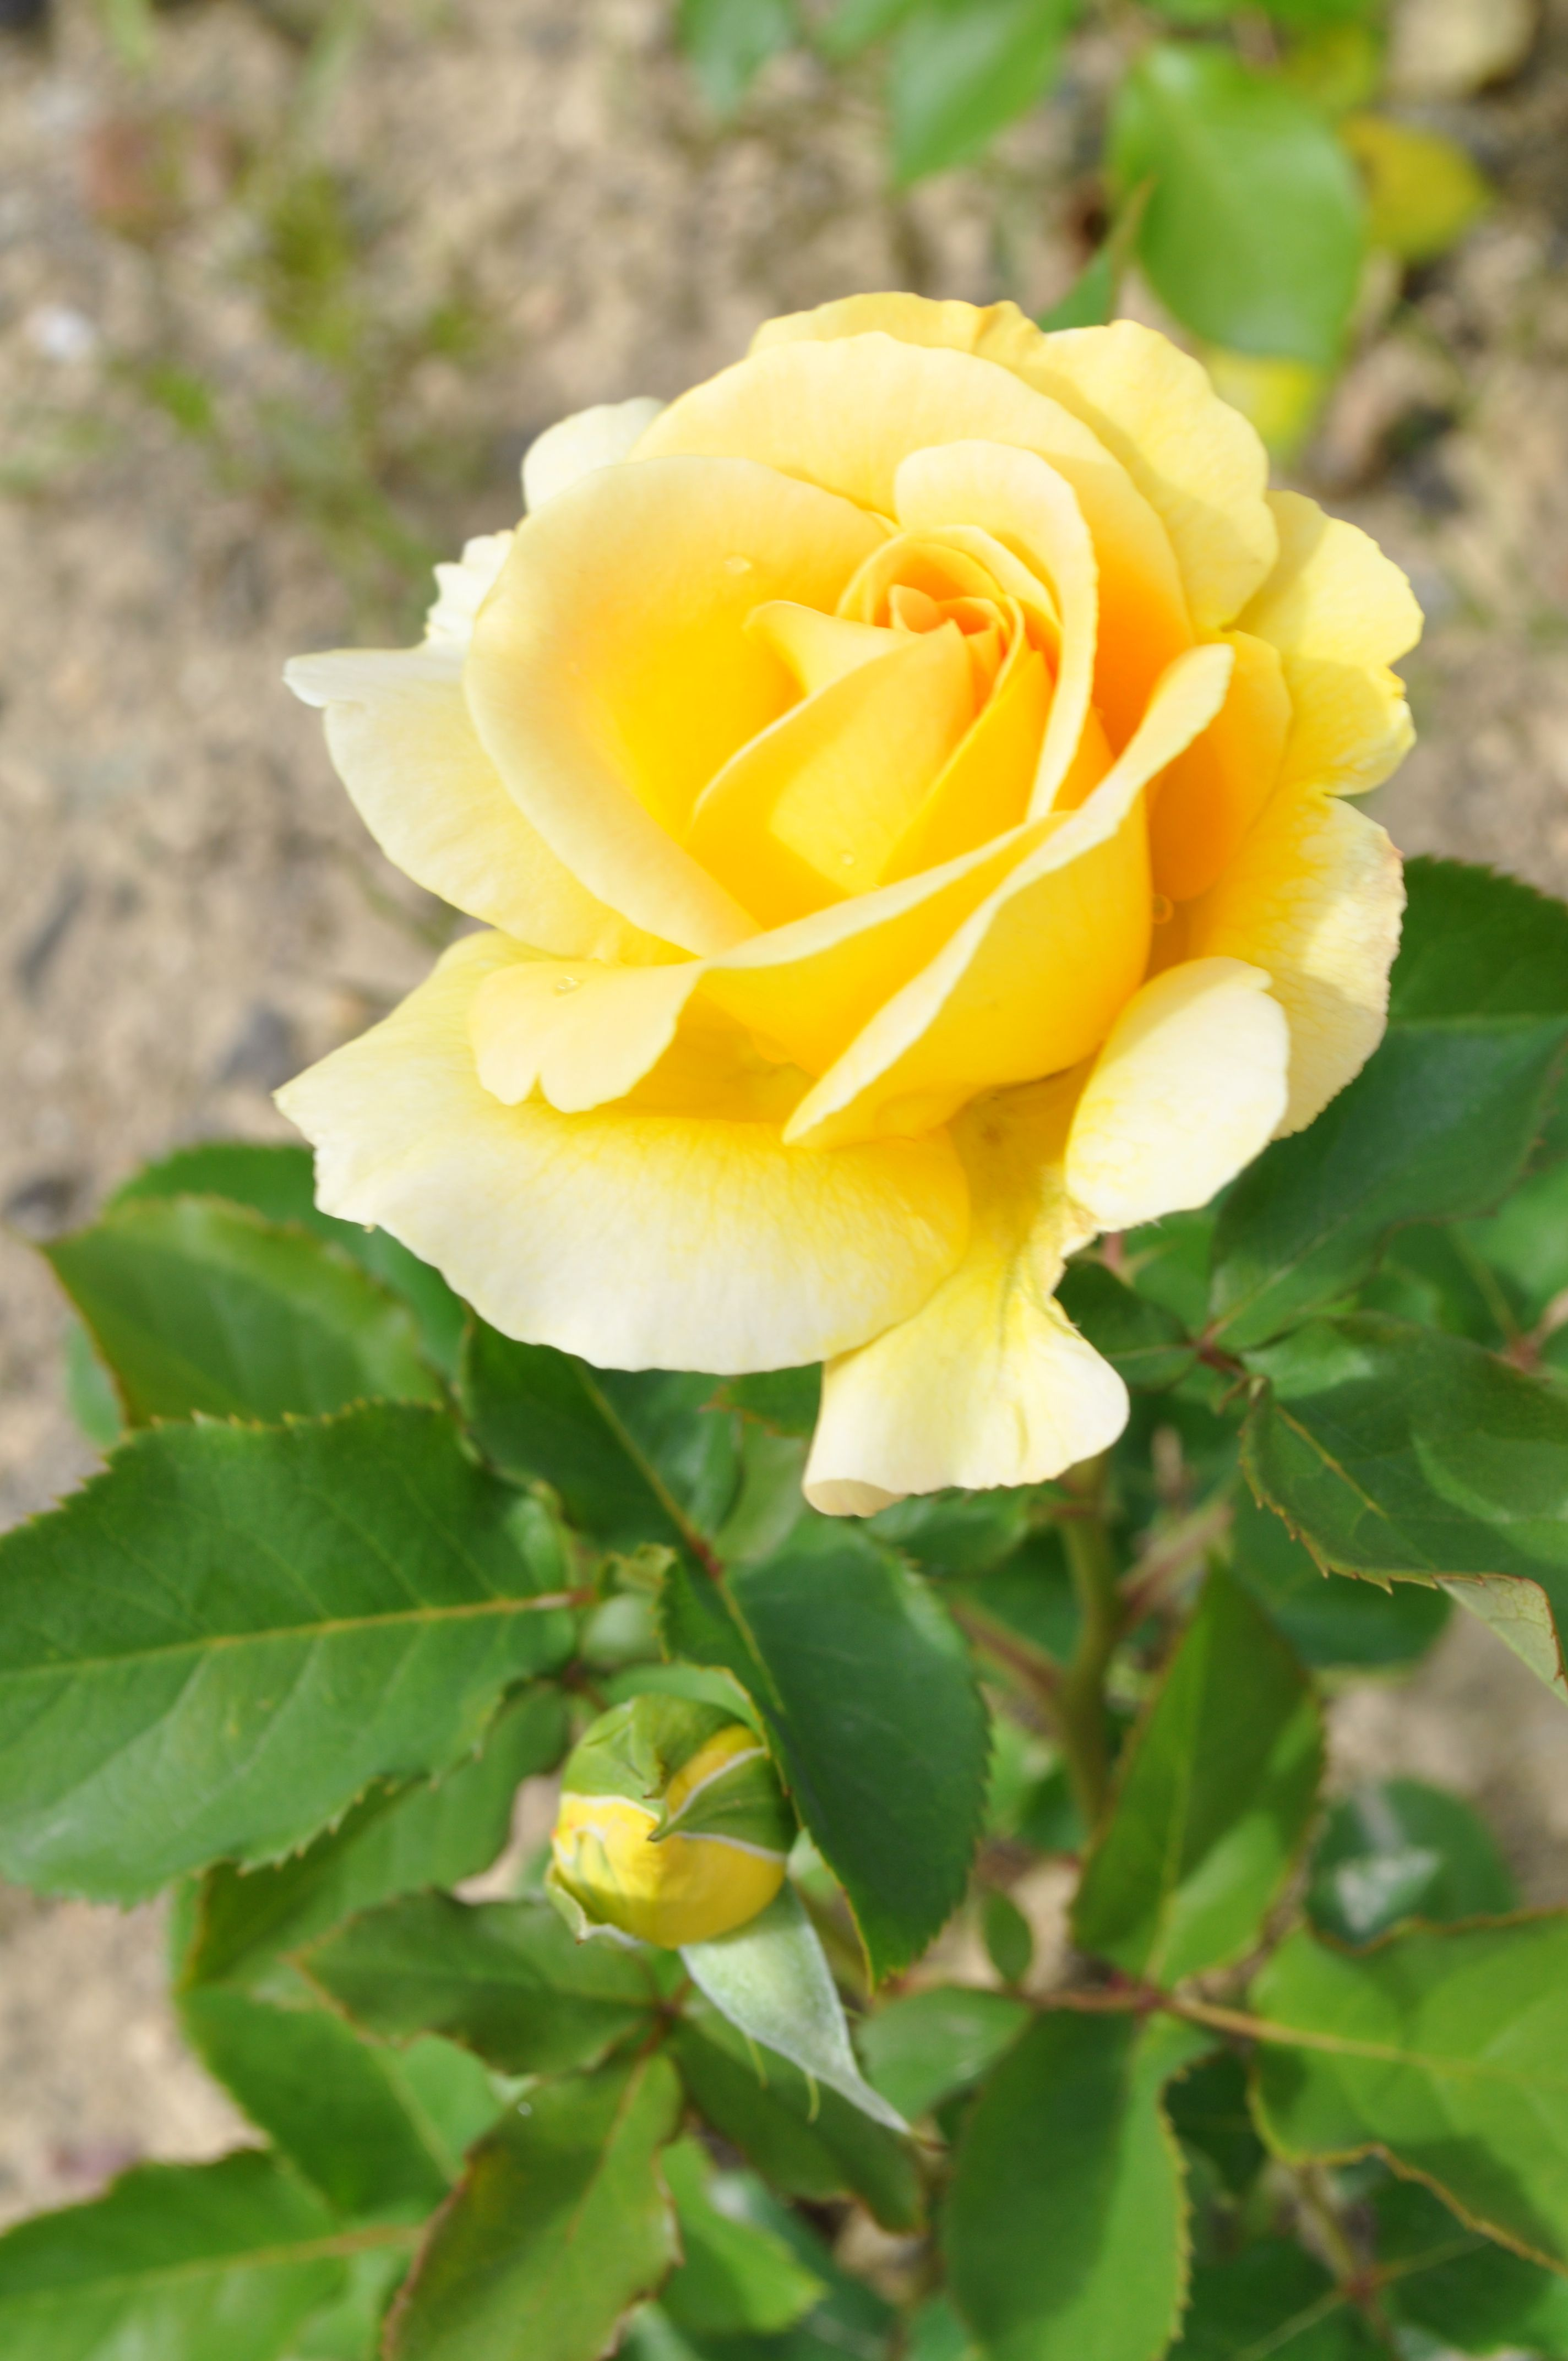 Pin by shailesh dixit on s k dixits photographs flowers morning flowers blooming flowers rose buds yellow roses flower photography roses garden beautiful flowers floral wallpapers granddaughters izmirmasajfo